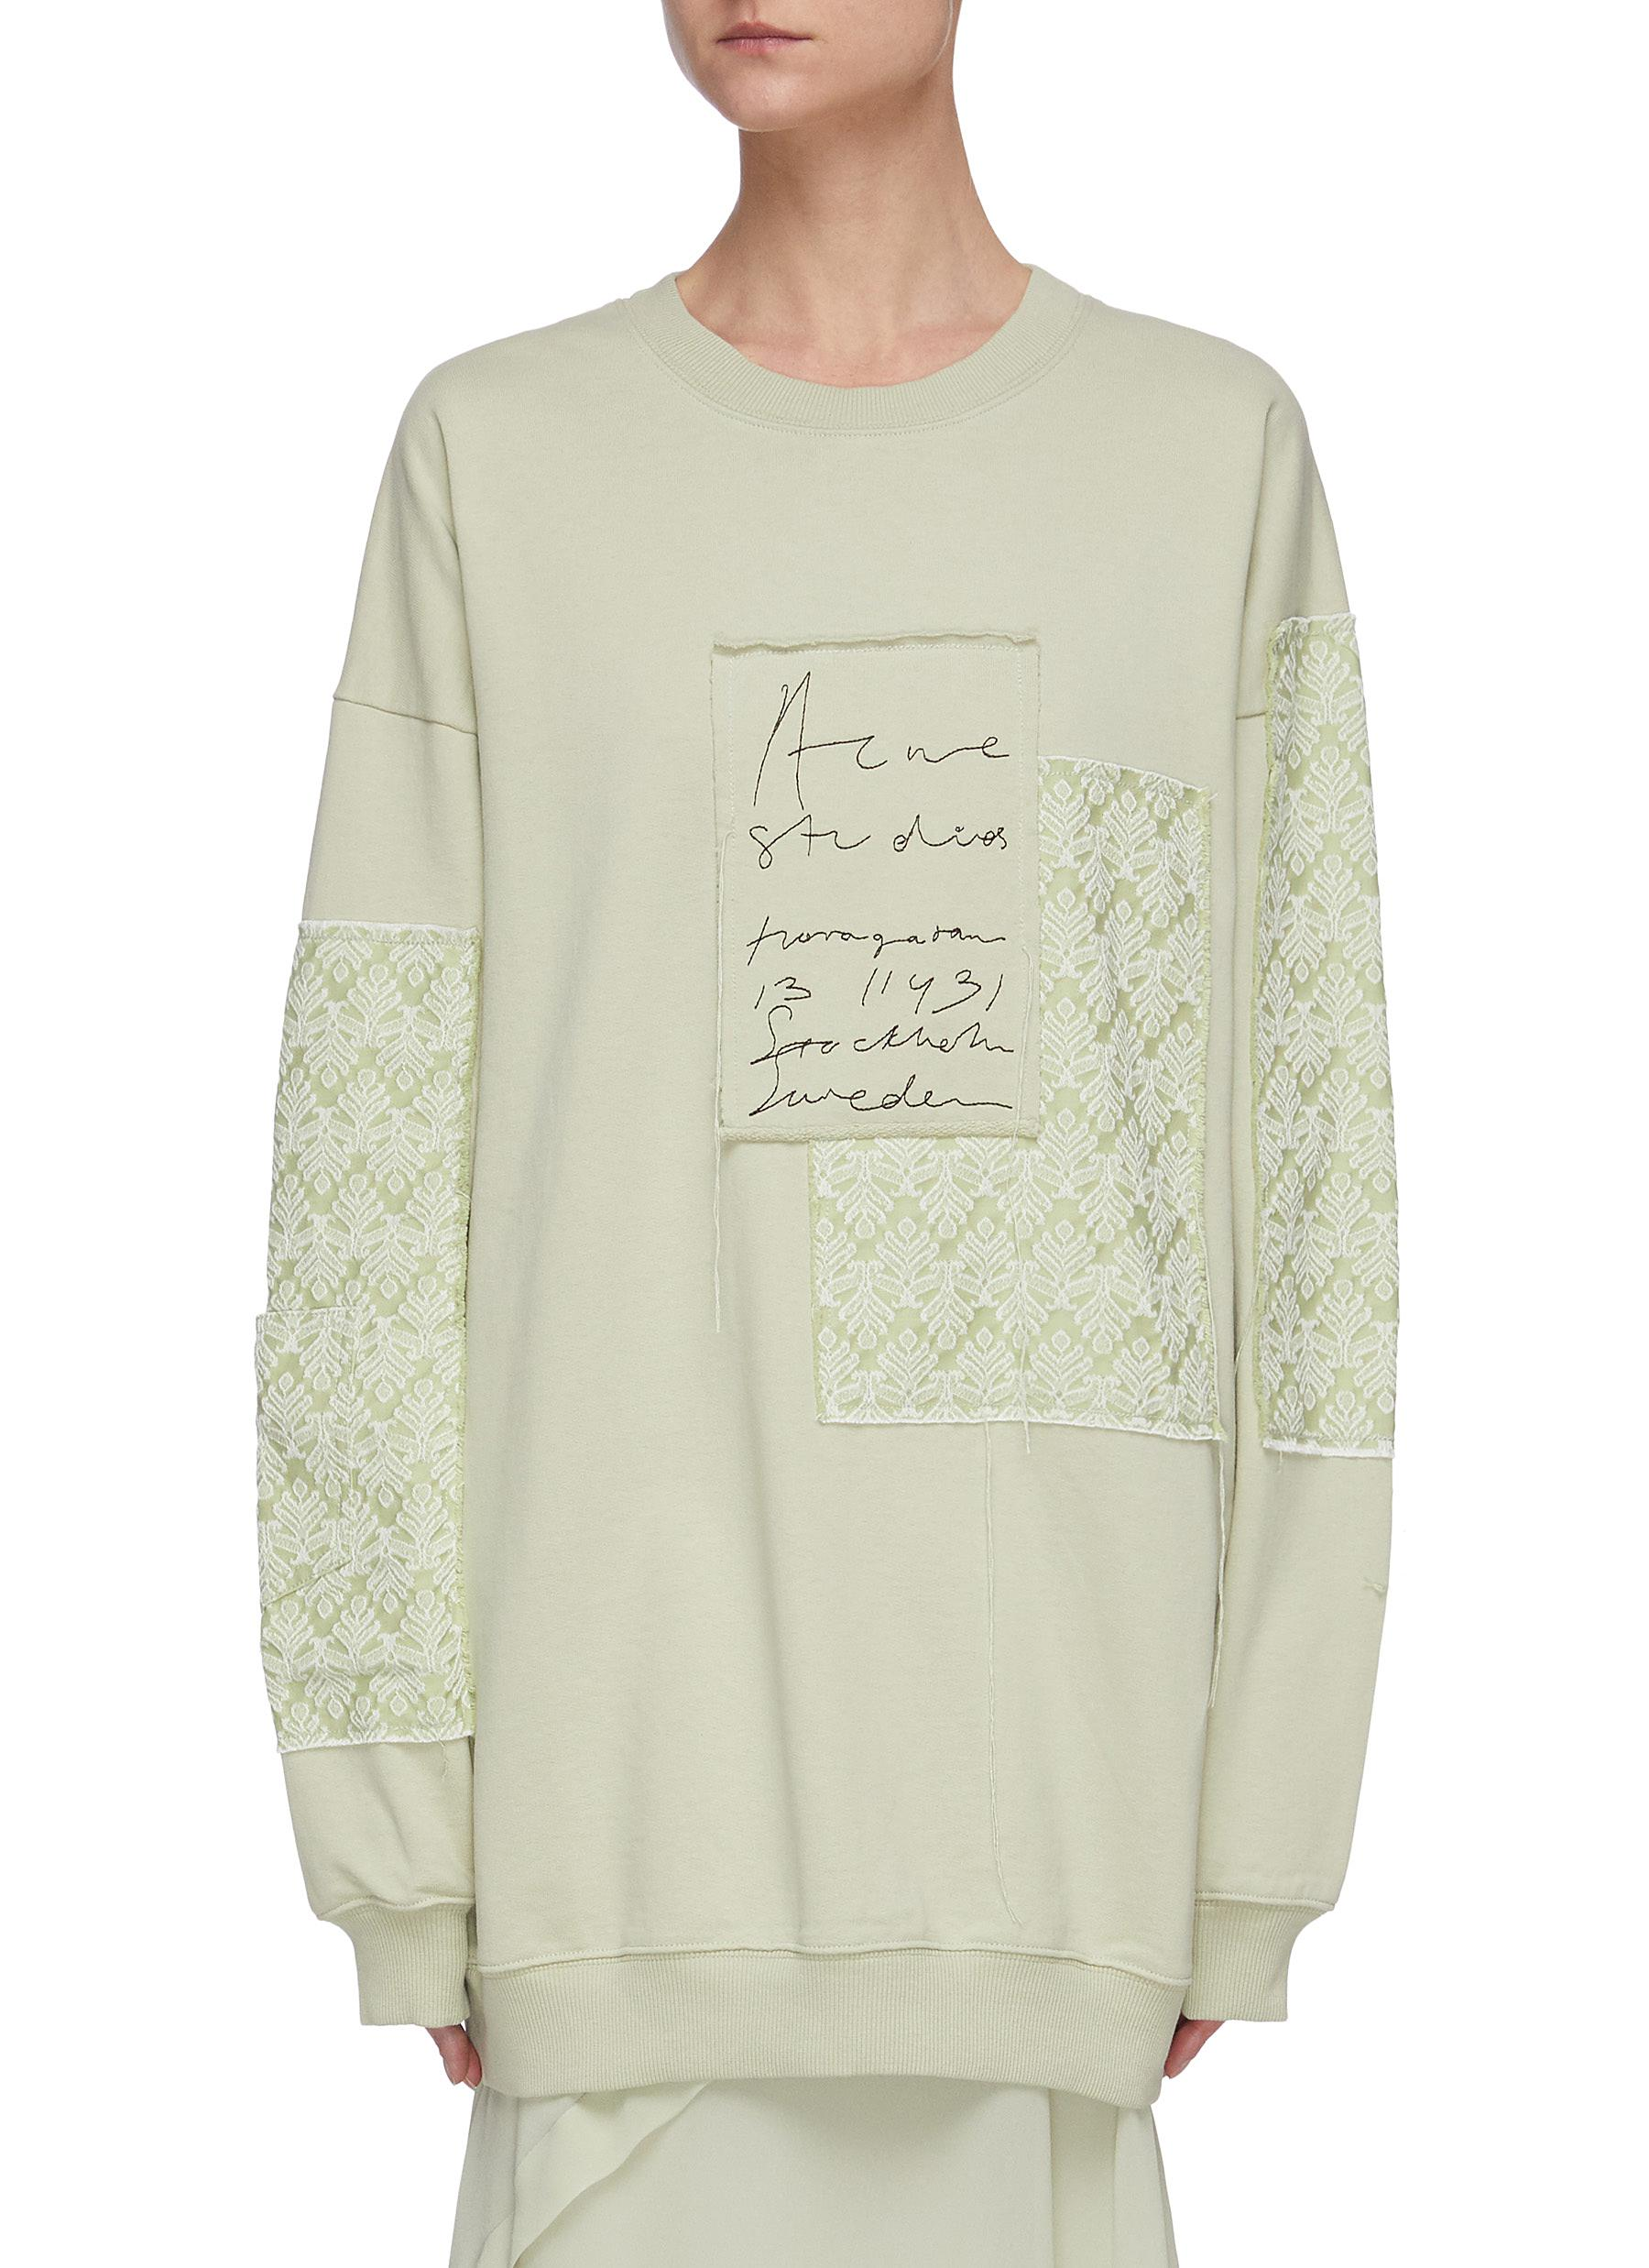 shop Acne Studios Jacquard-patches handwritten logo embroidered sweatshirt online